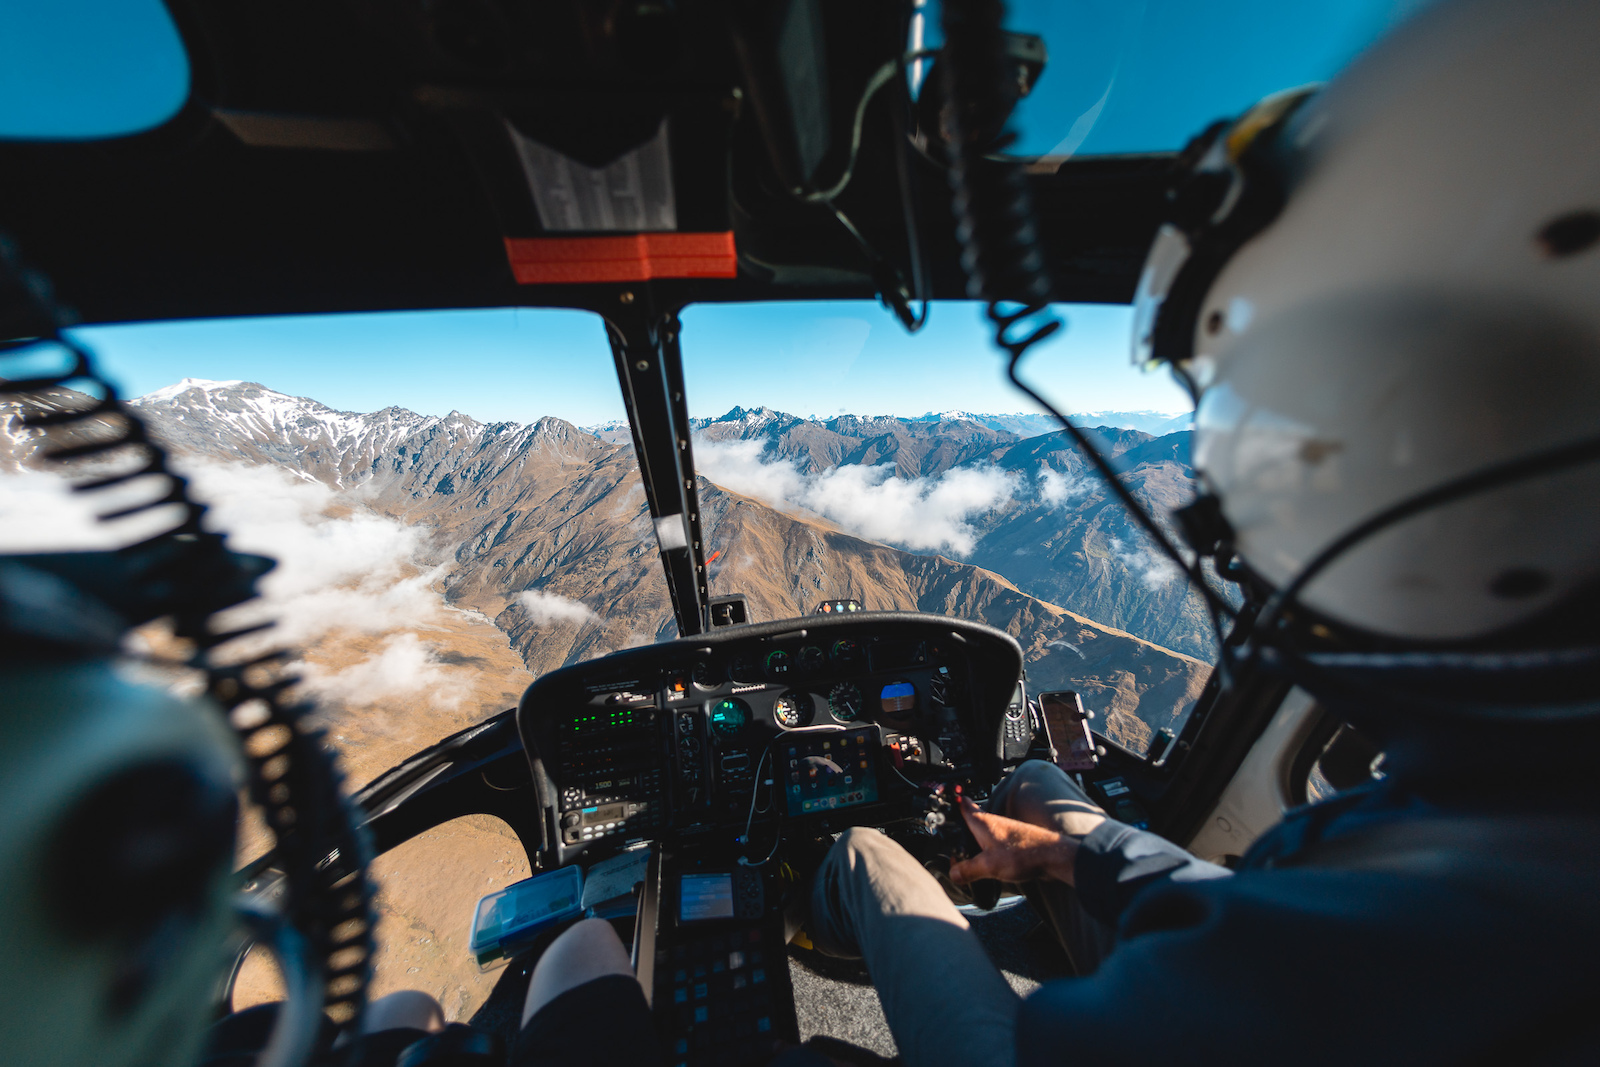 Another quick heli bump to our next riding destination in Minaret Station.